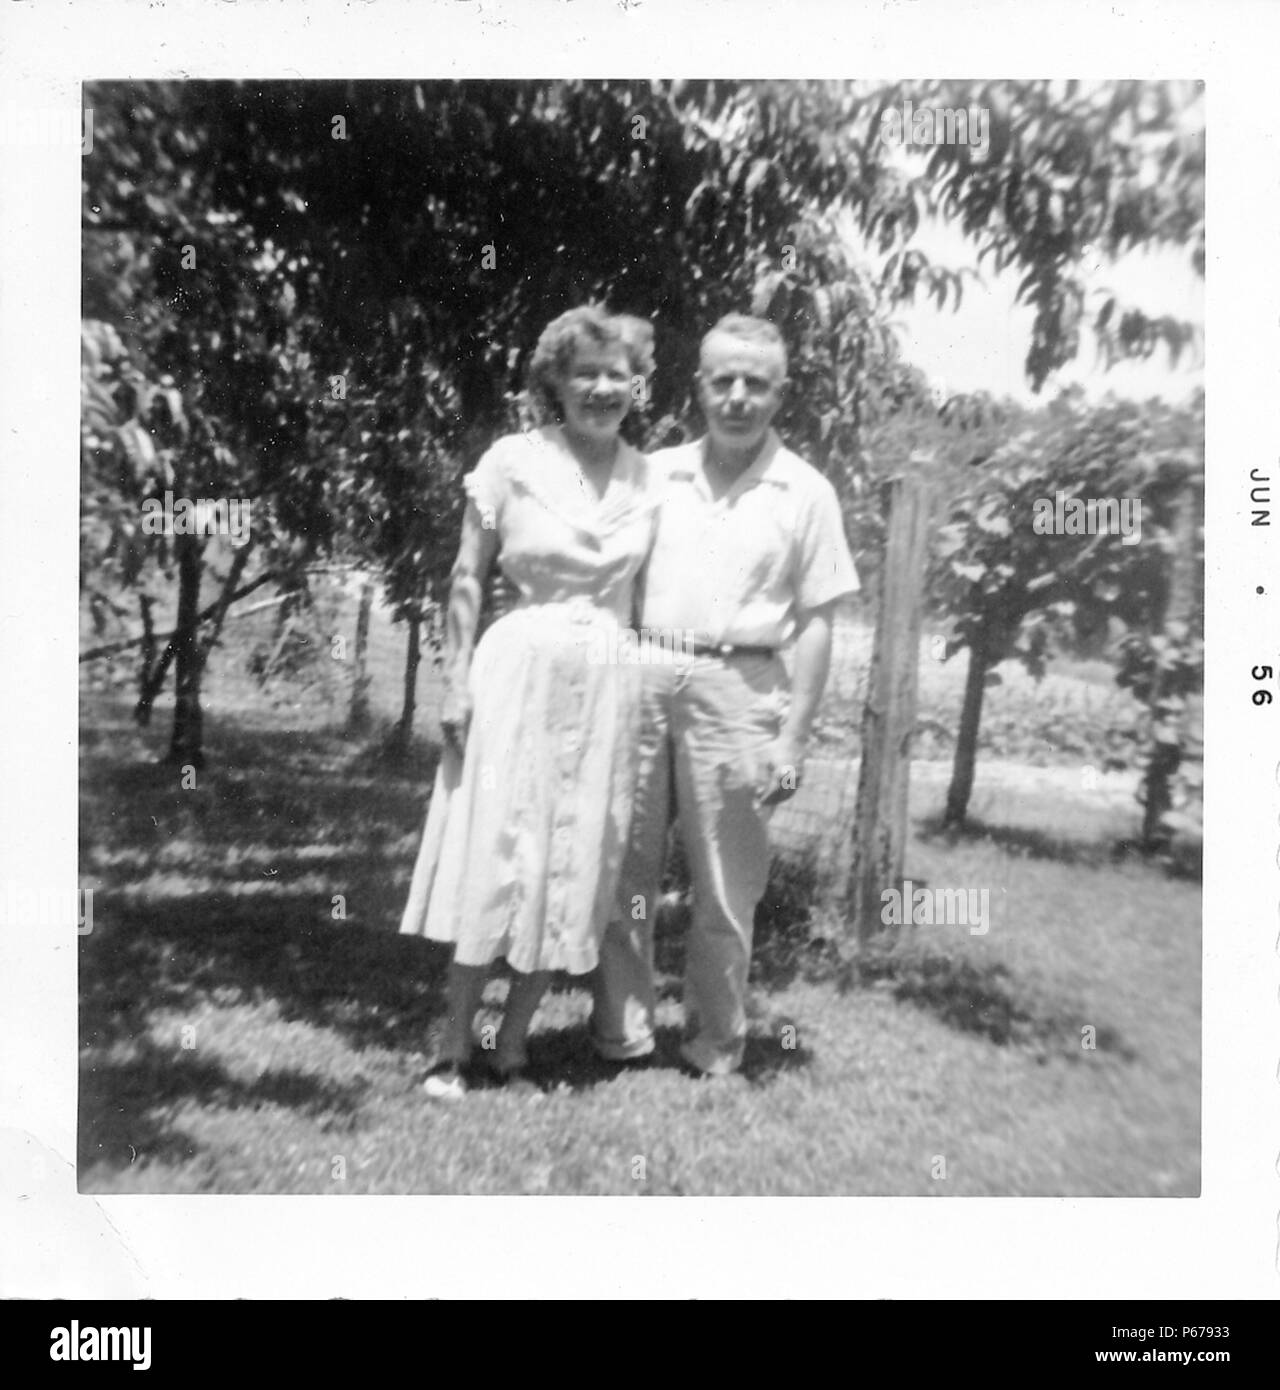 Black and white photograph, showing an older couple, both smiling, standing outdoors in full length, the man wears a light colored shirt and trousers, and wraps his arm around the waist of his wife who wears a light colored, tea-length dress, with foliage visible in the background, likely photographed in Ohio, June, 1956. () Stock Photo